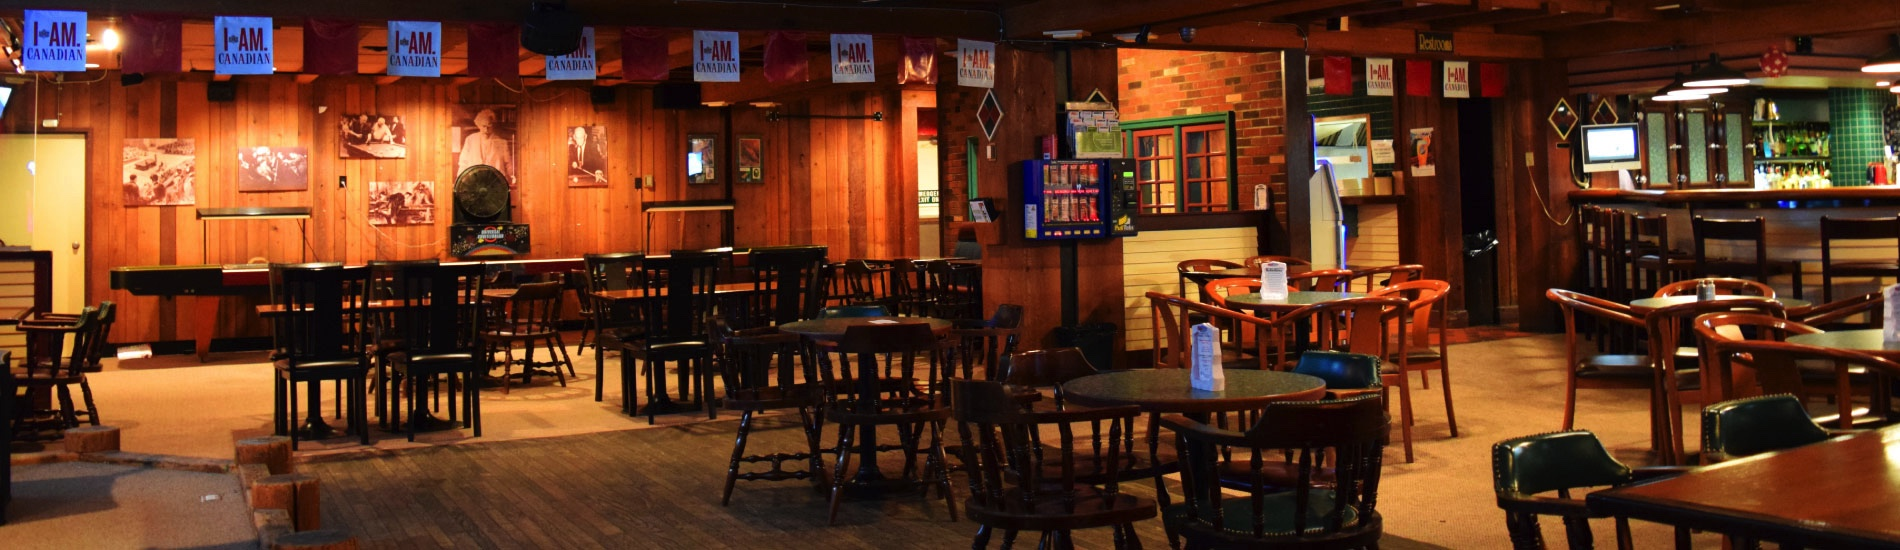 Daily Specials   The Lougheed Village Bar & Grill